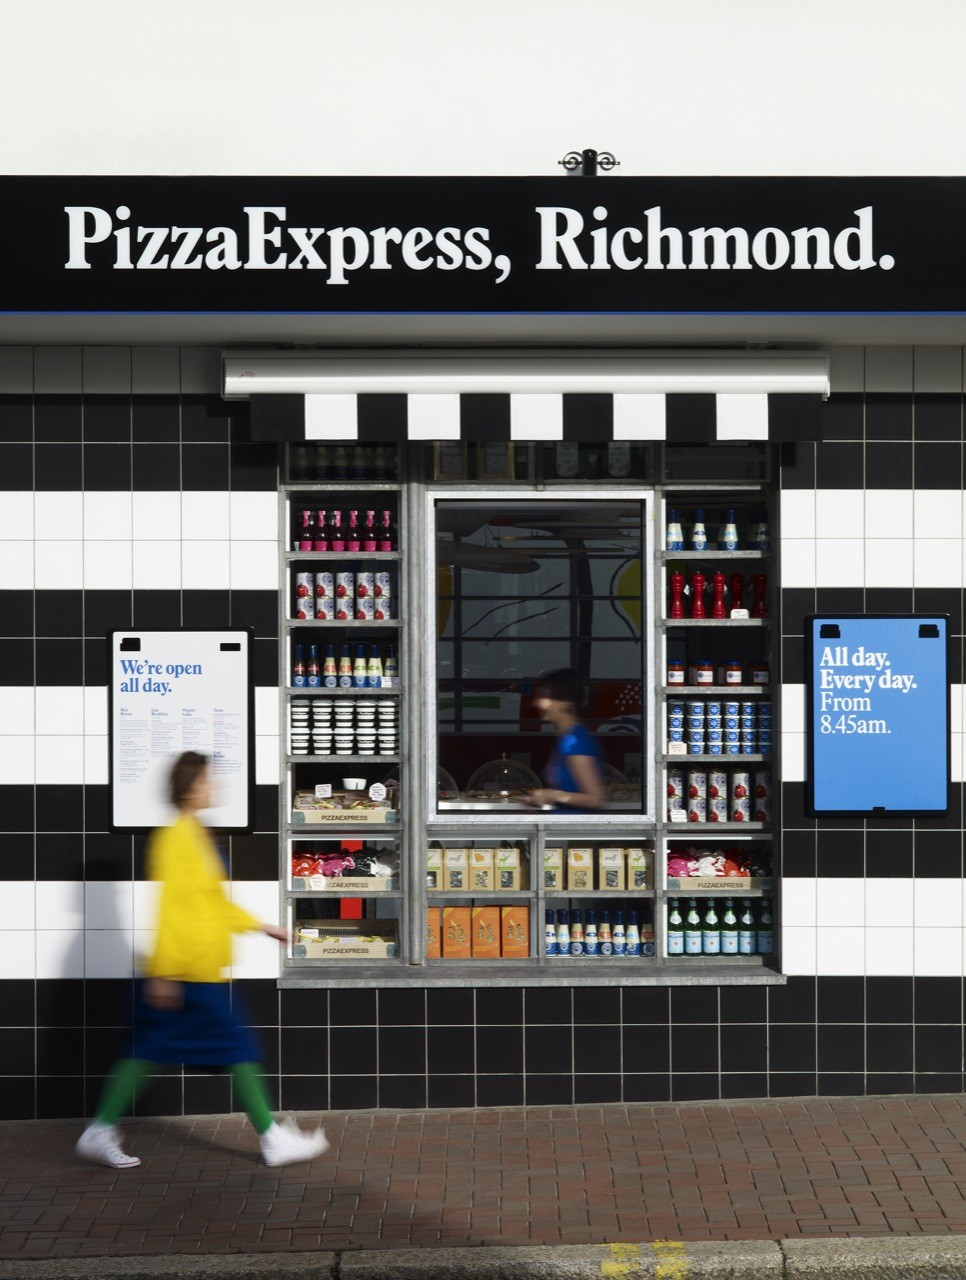 PizzaExpress / Ab Rogers Design, Courtesy of Ab Rogers Design